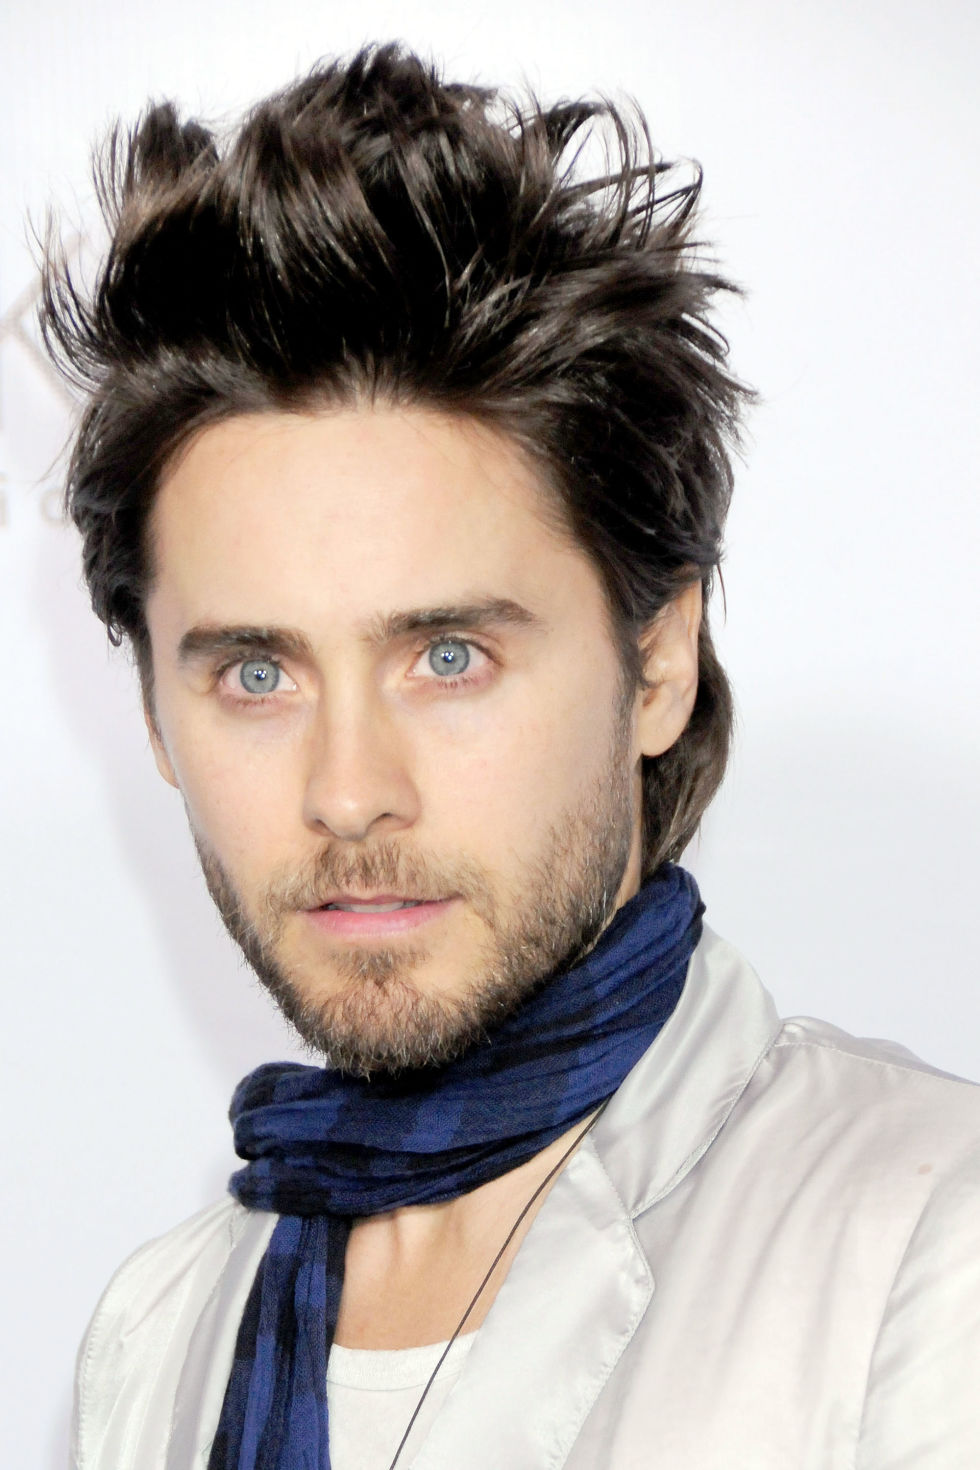 jared leto tumblr